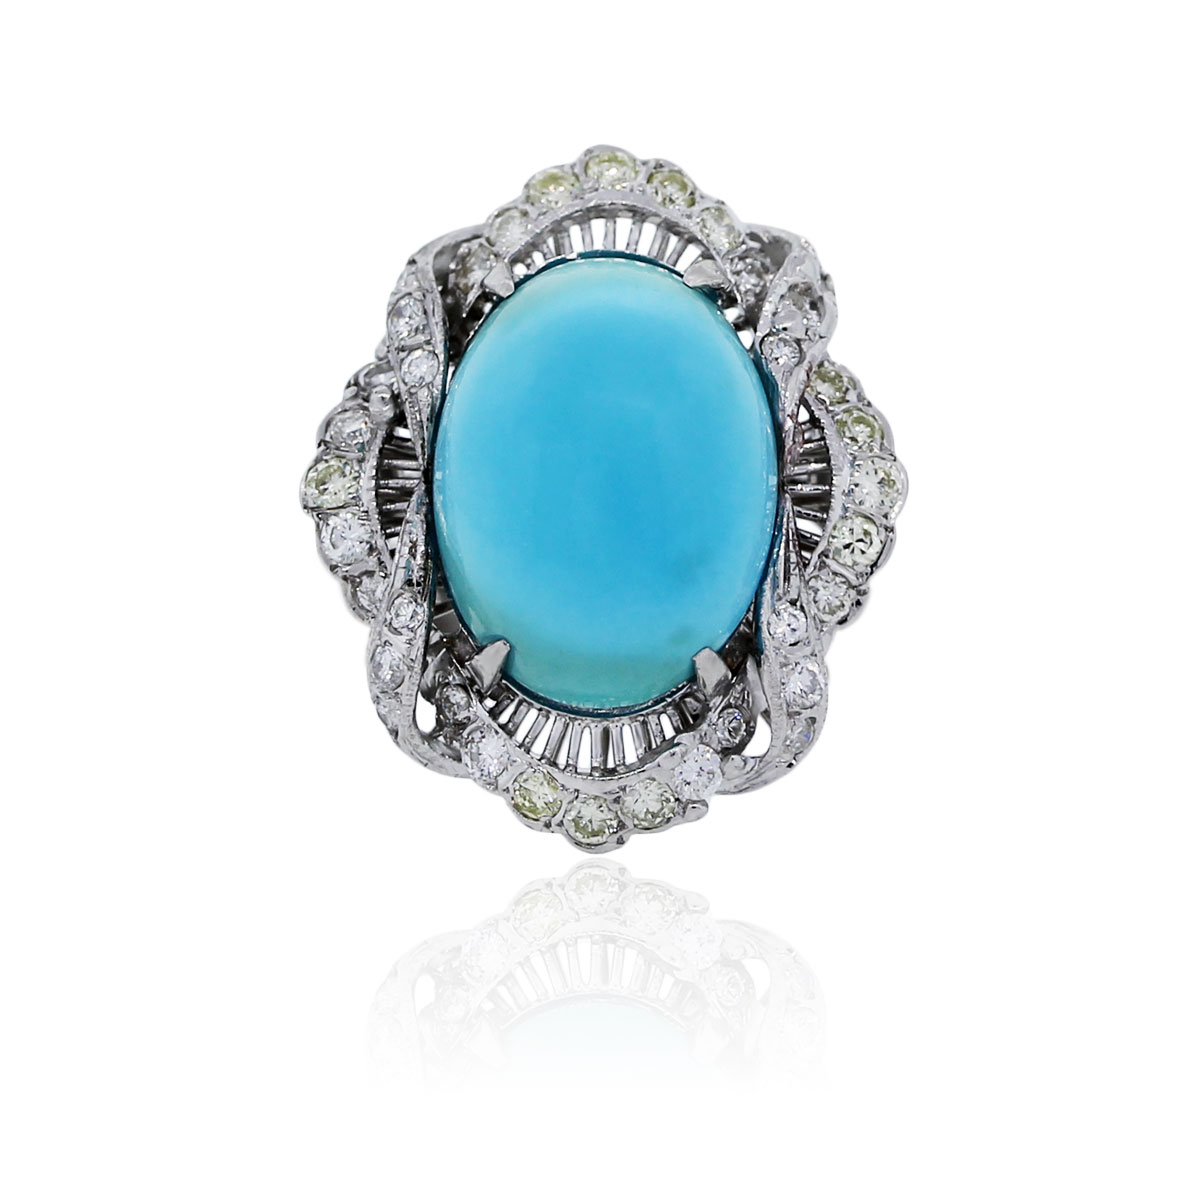 You are viewing this 18k White Gold Turquoise and Diamond Cocktail Ring!